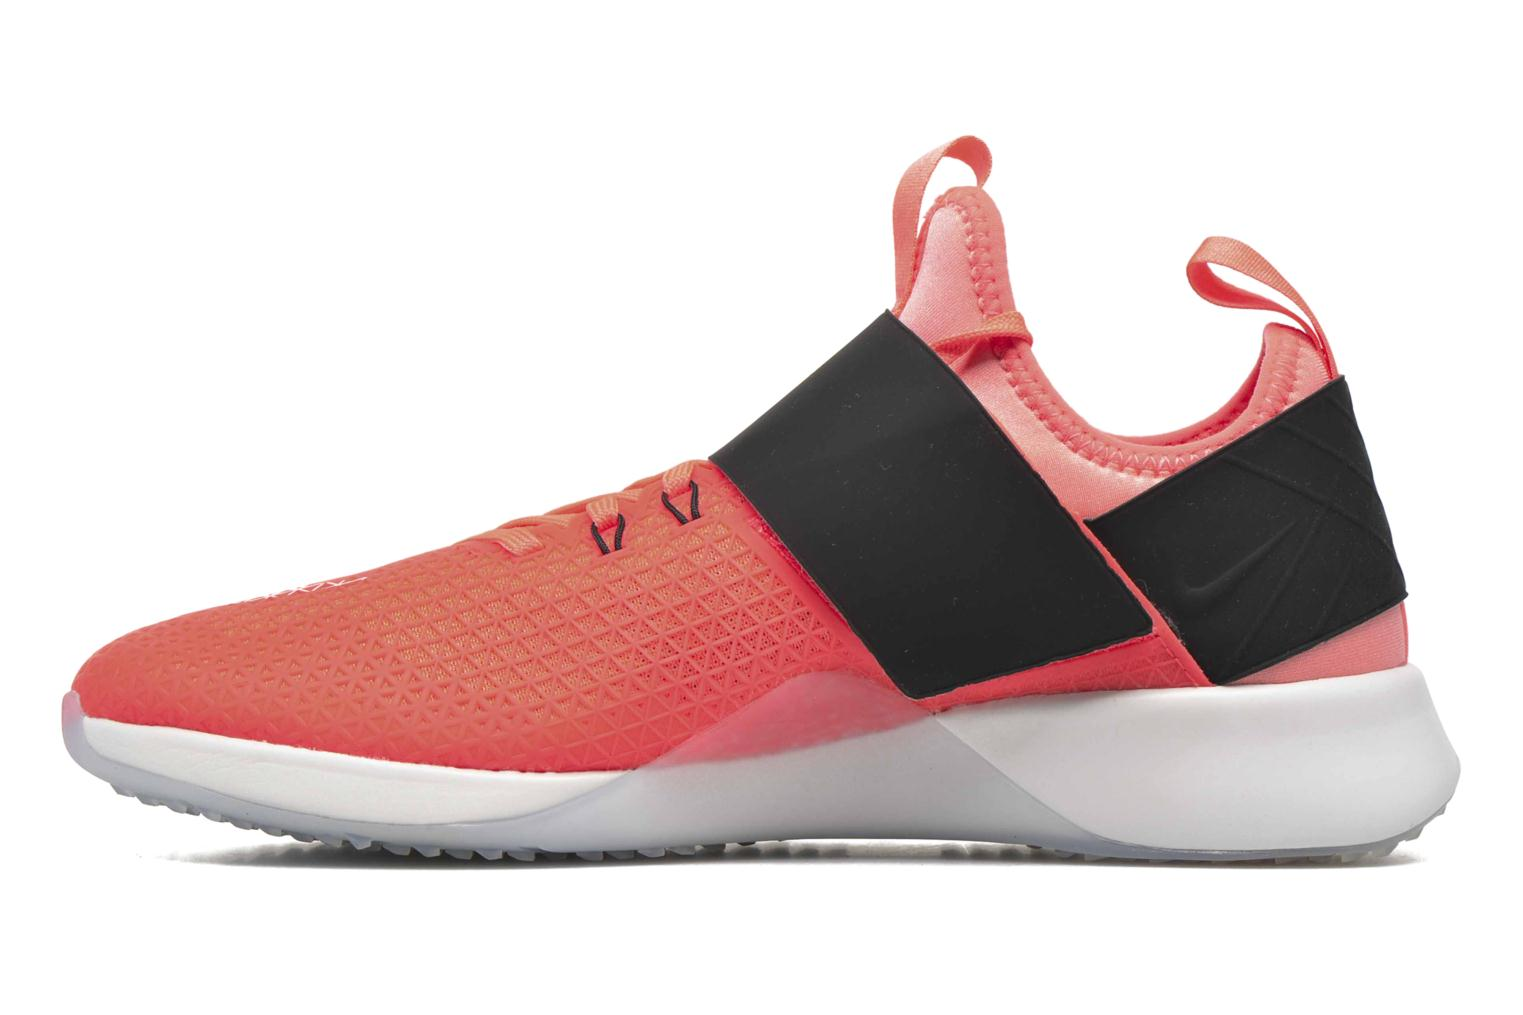 Wmns Nike Air Zoom Strong Bright Mango/Summit White-Black